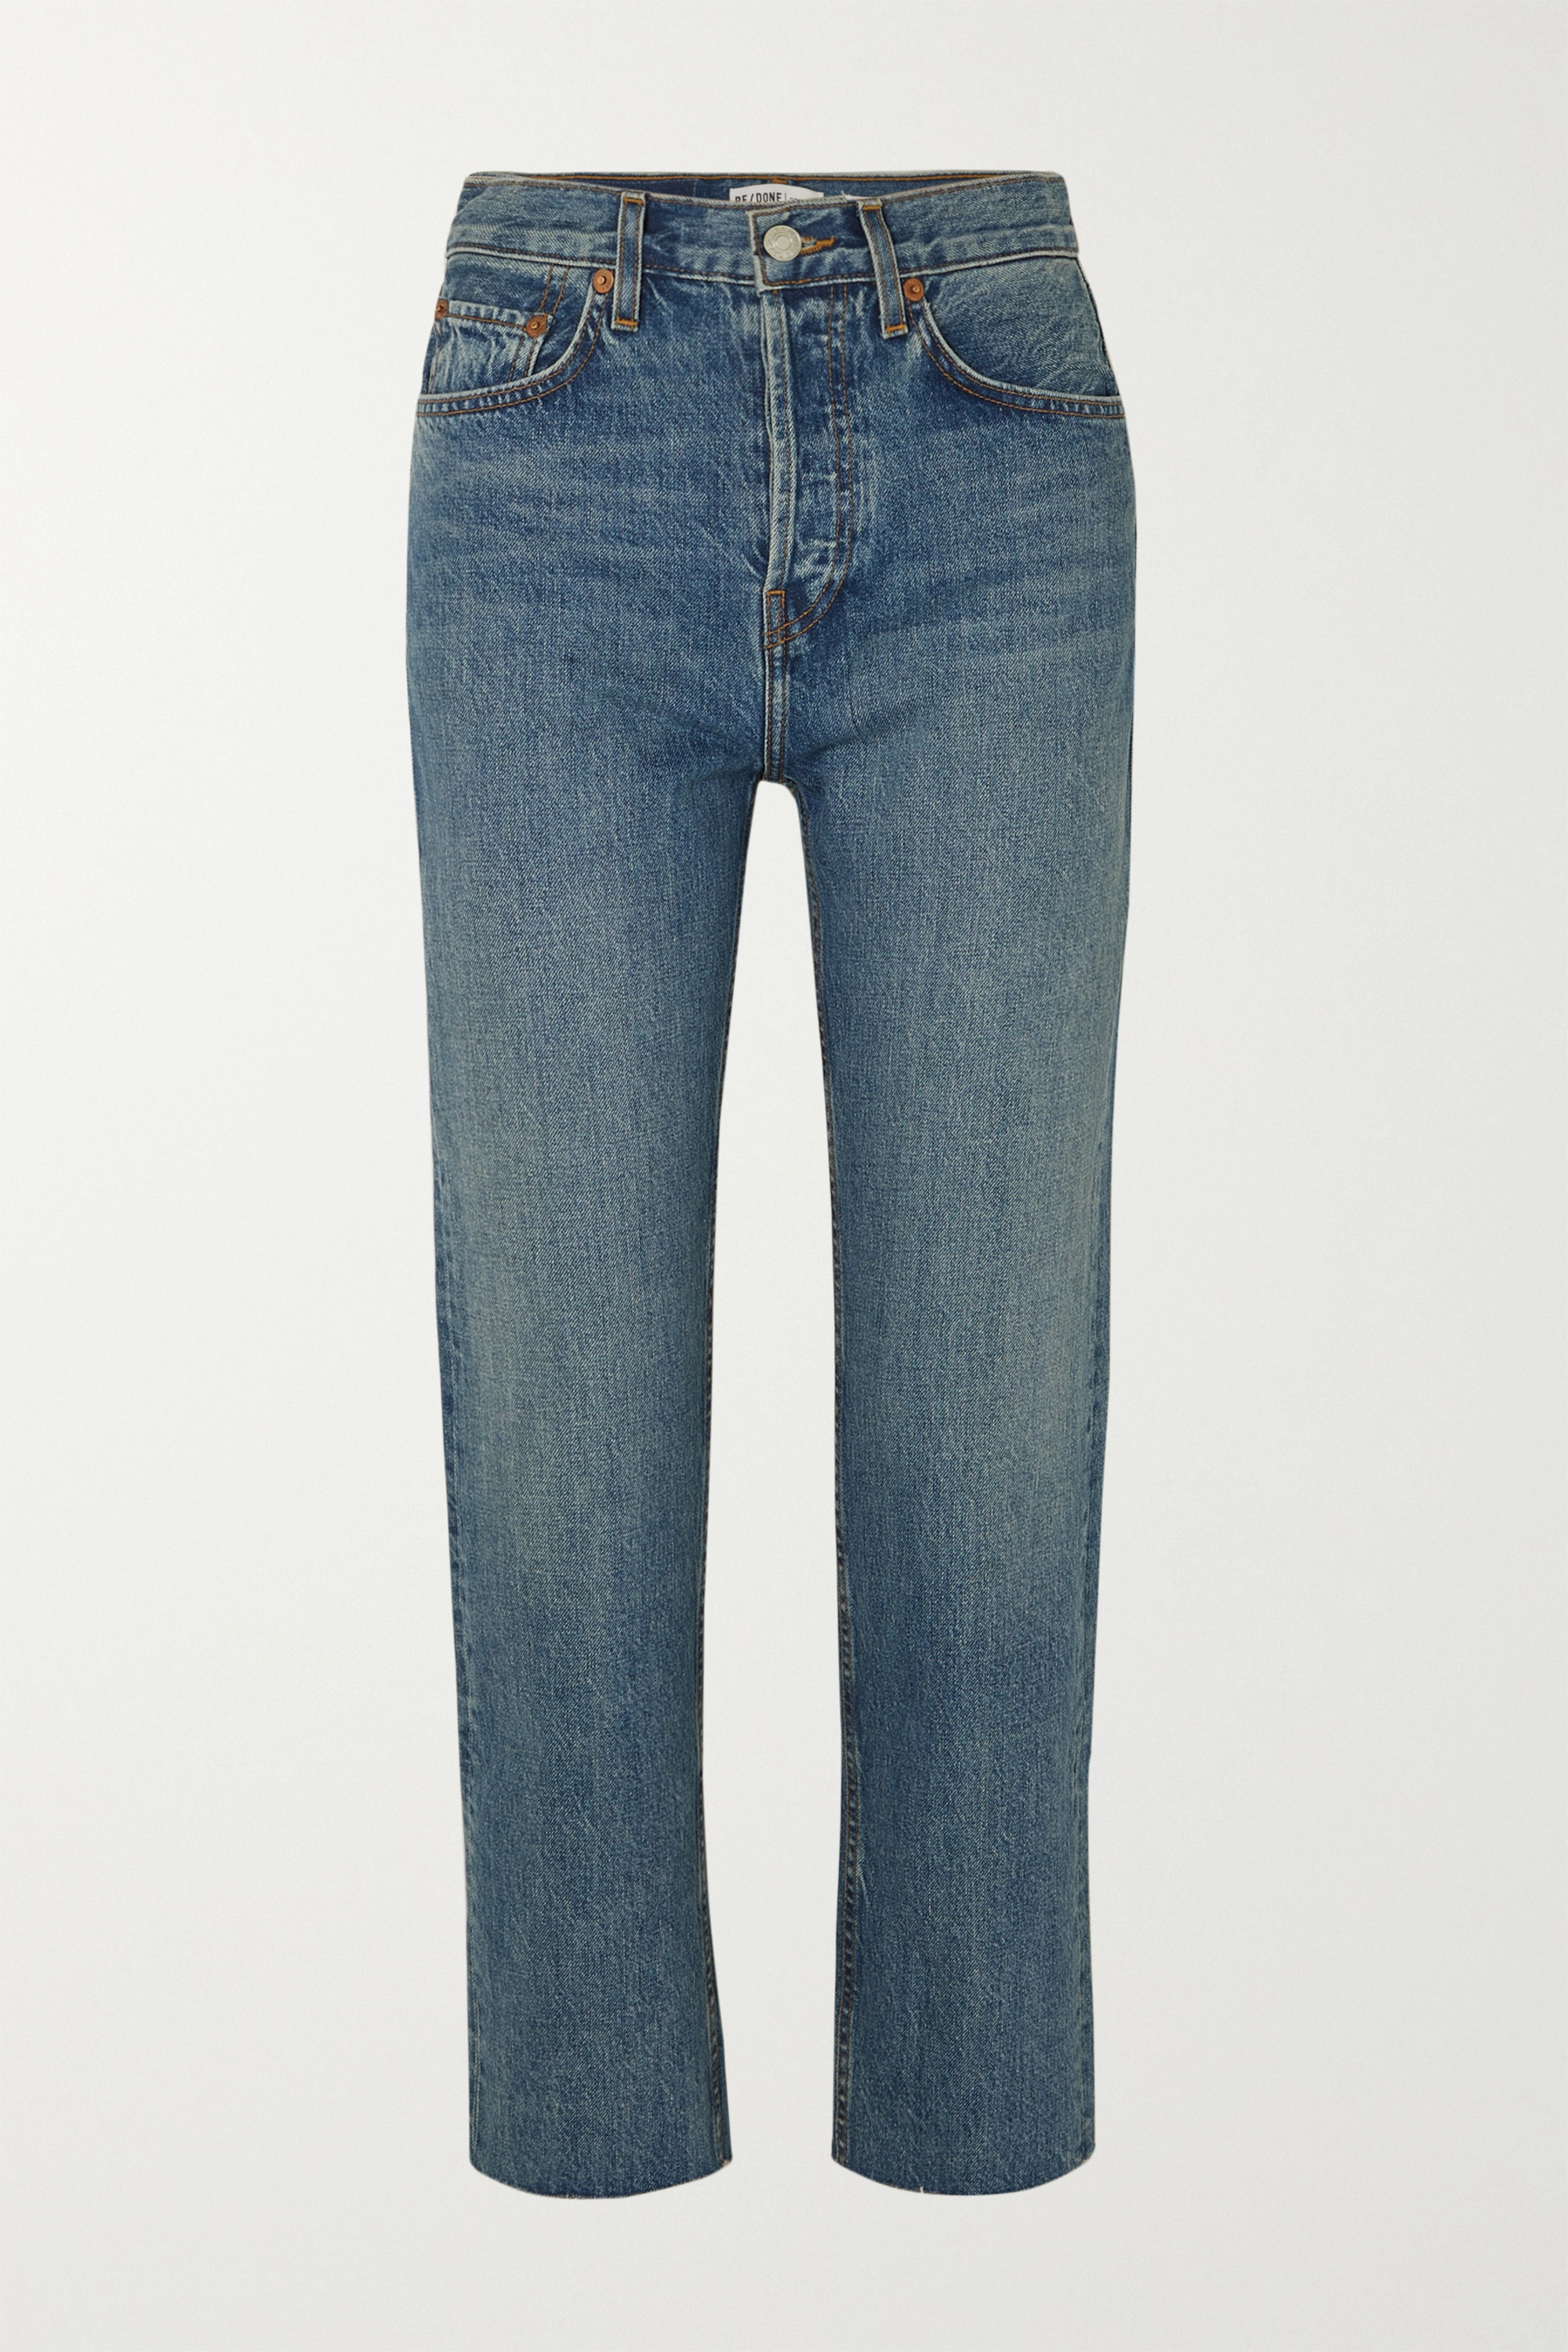 RE/DONE Originals Stove Pipe high-rise straight-leg jeans